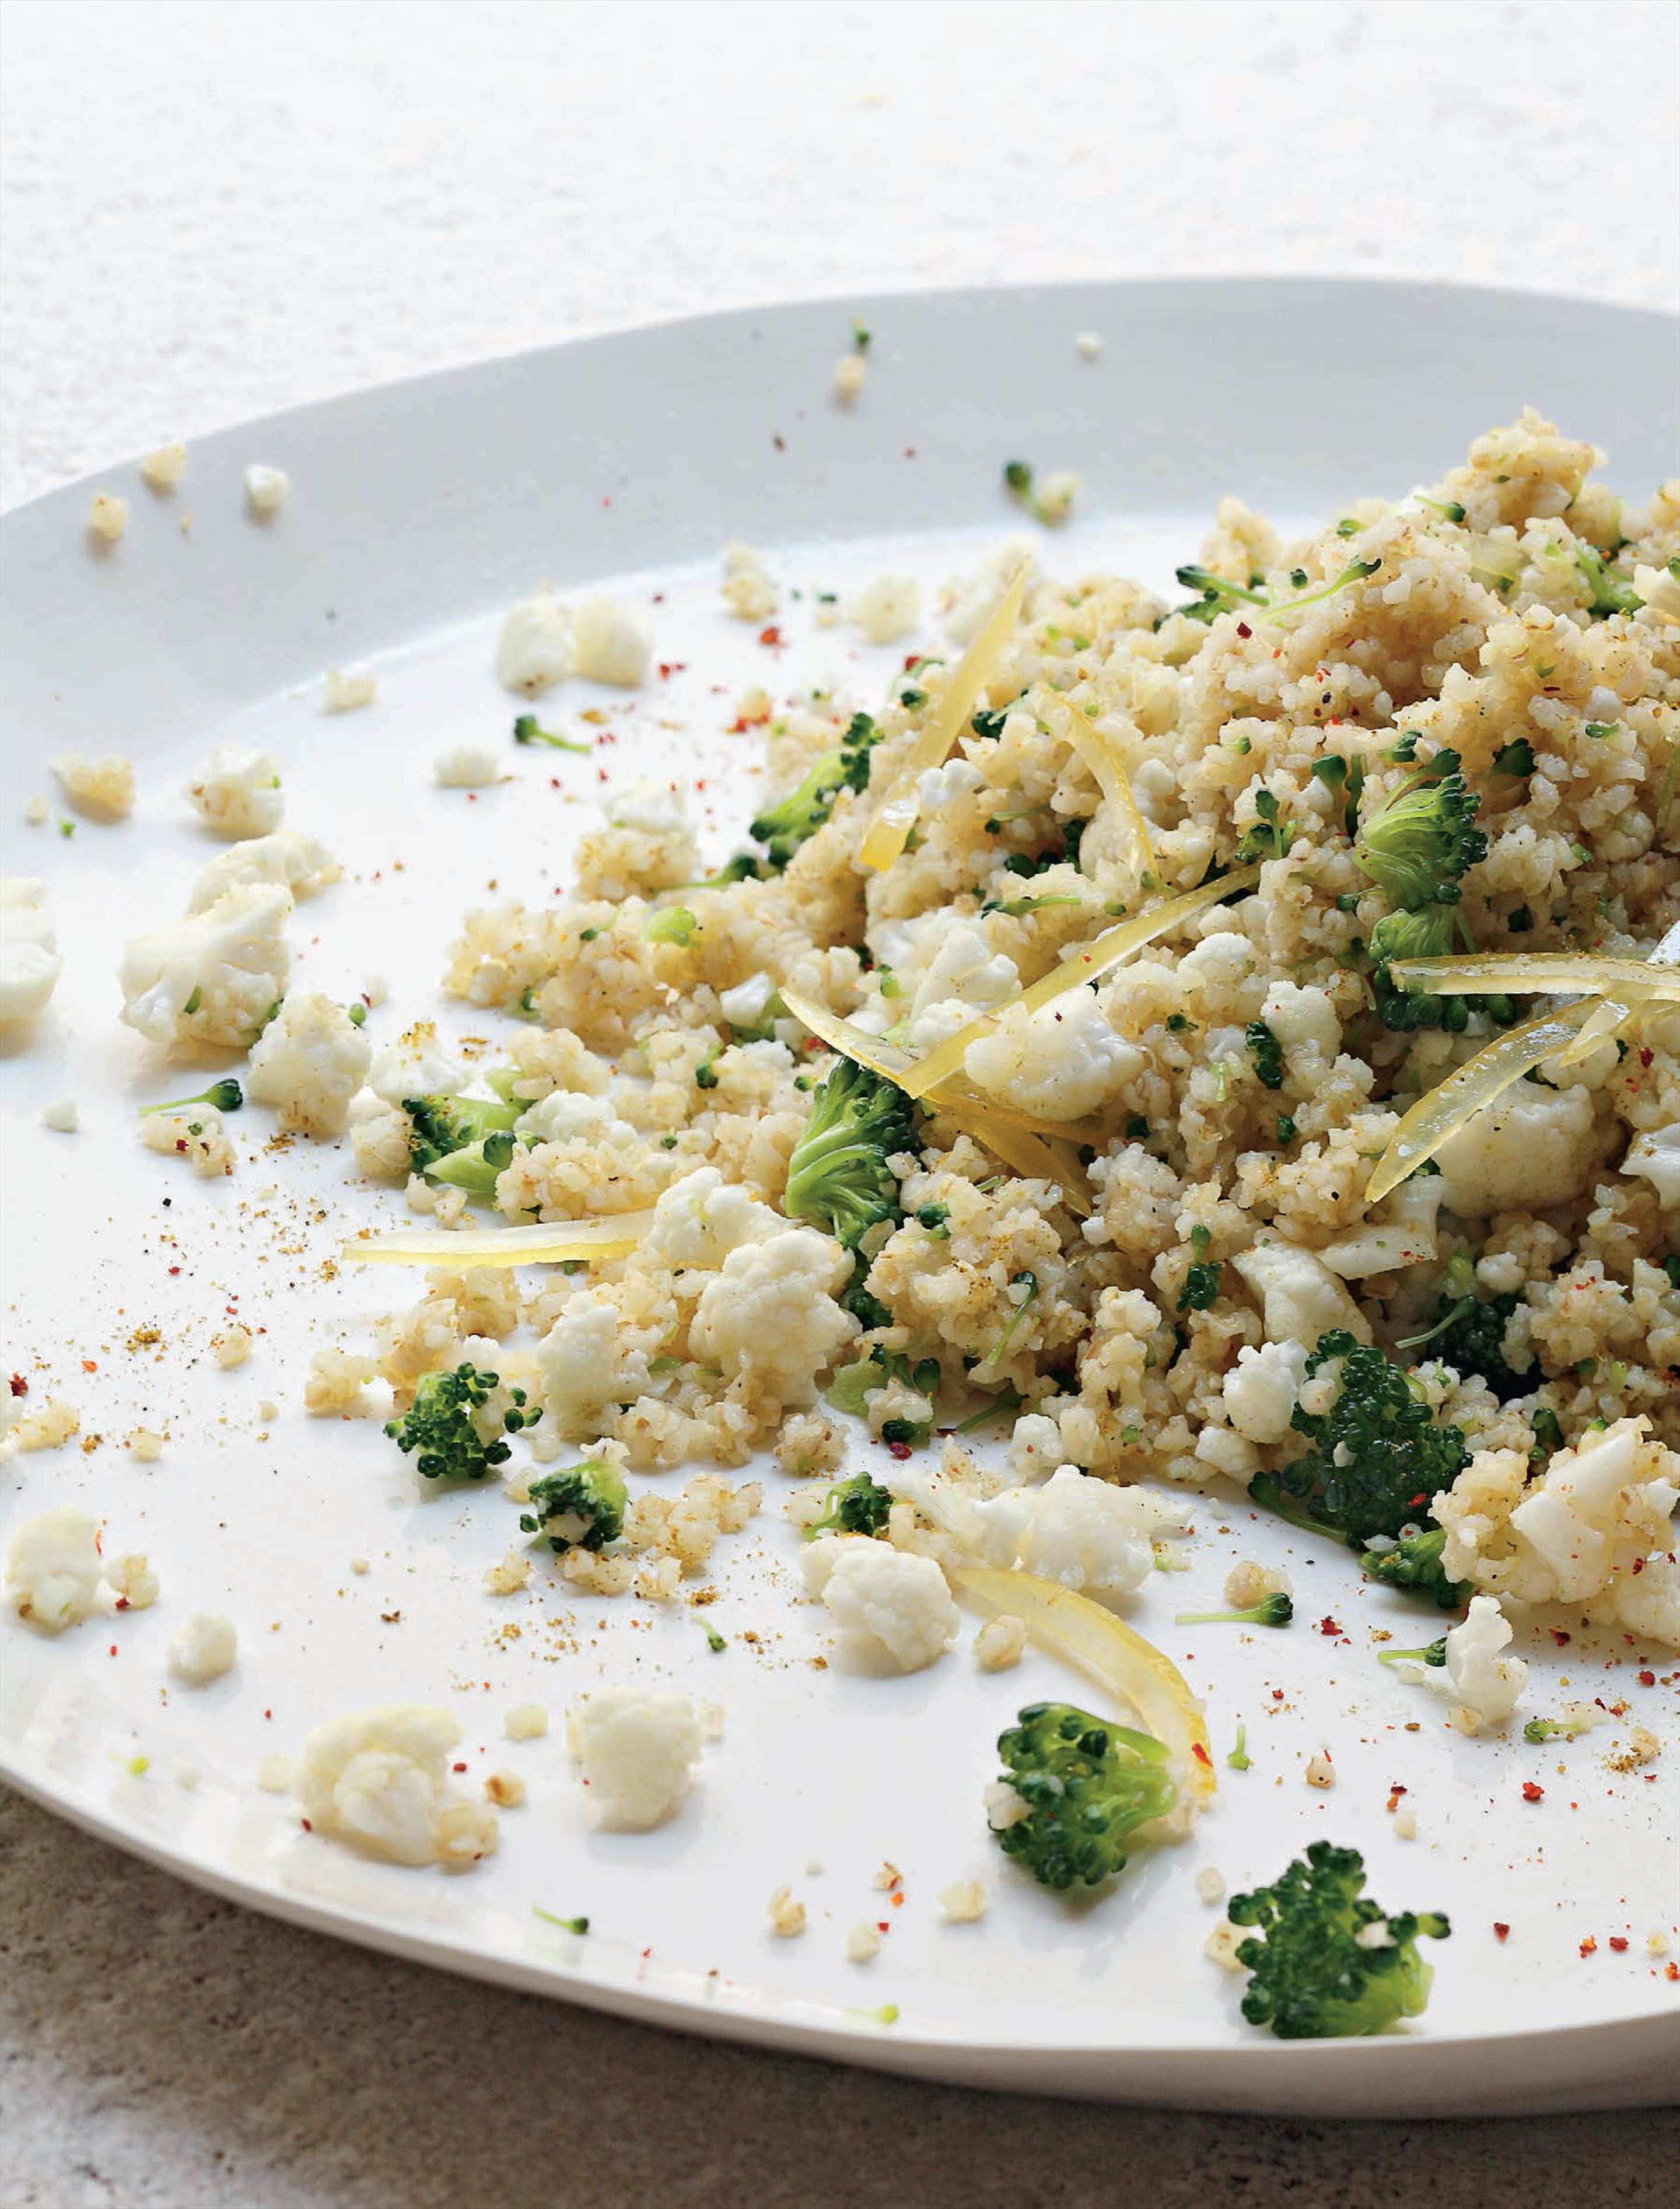 Cauliflower and broccoli in bulgur